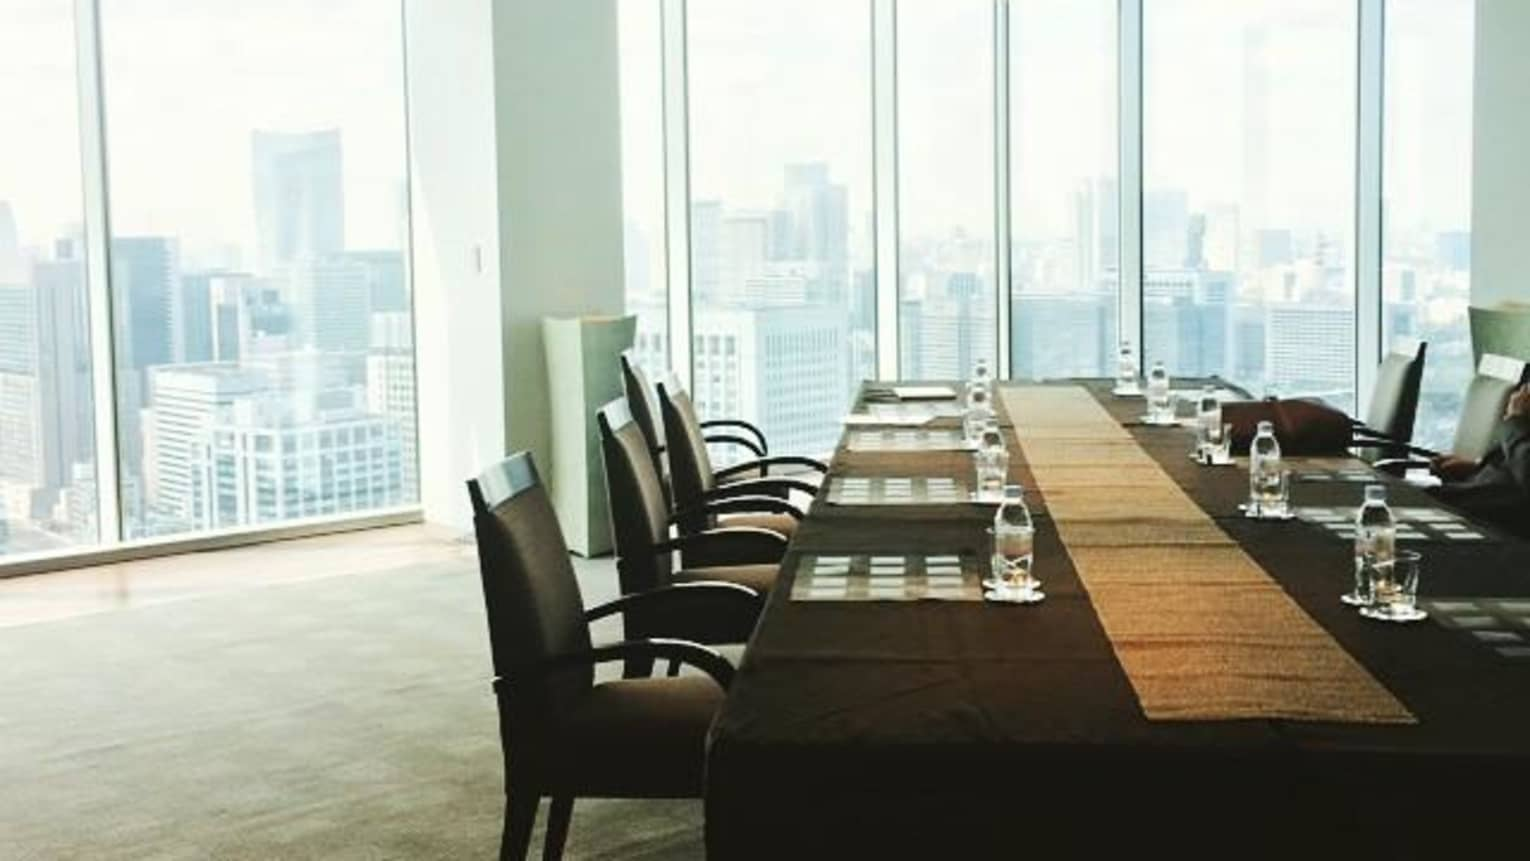 Long meeting table by sunny window